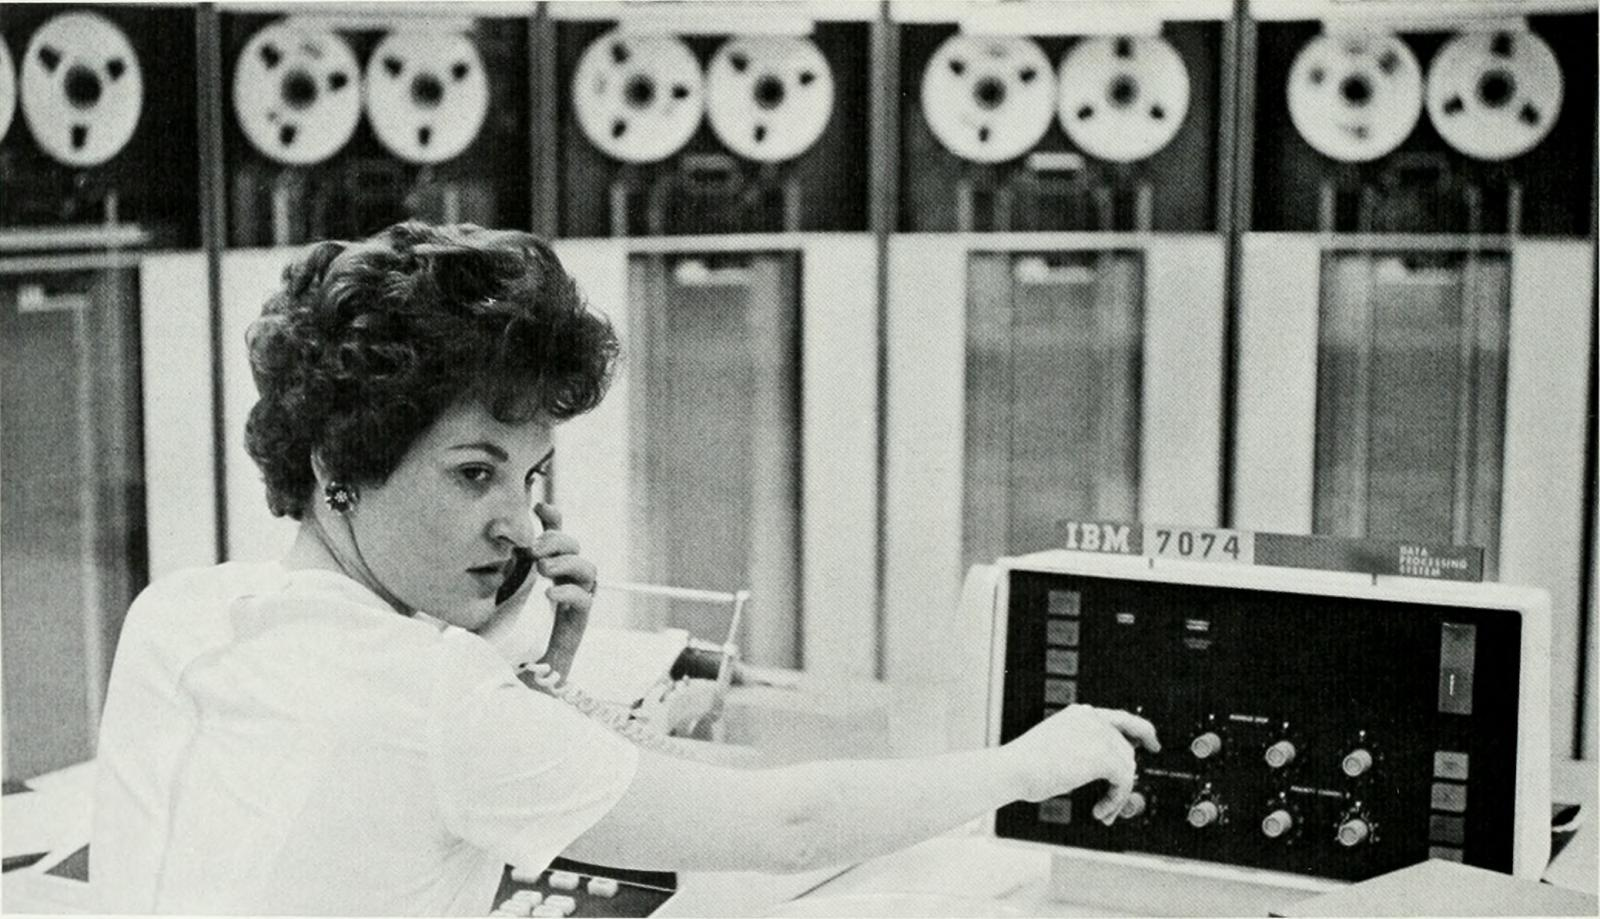 Woman on telephone using IBM 7074